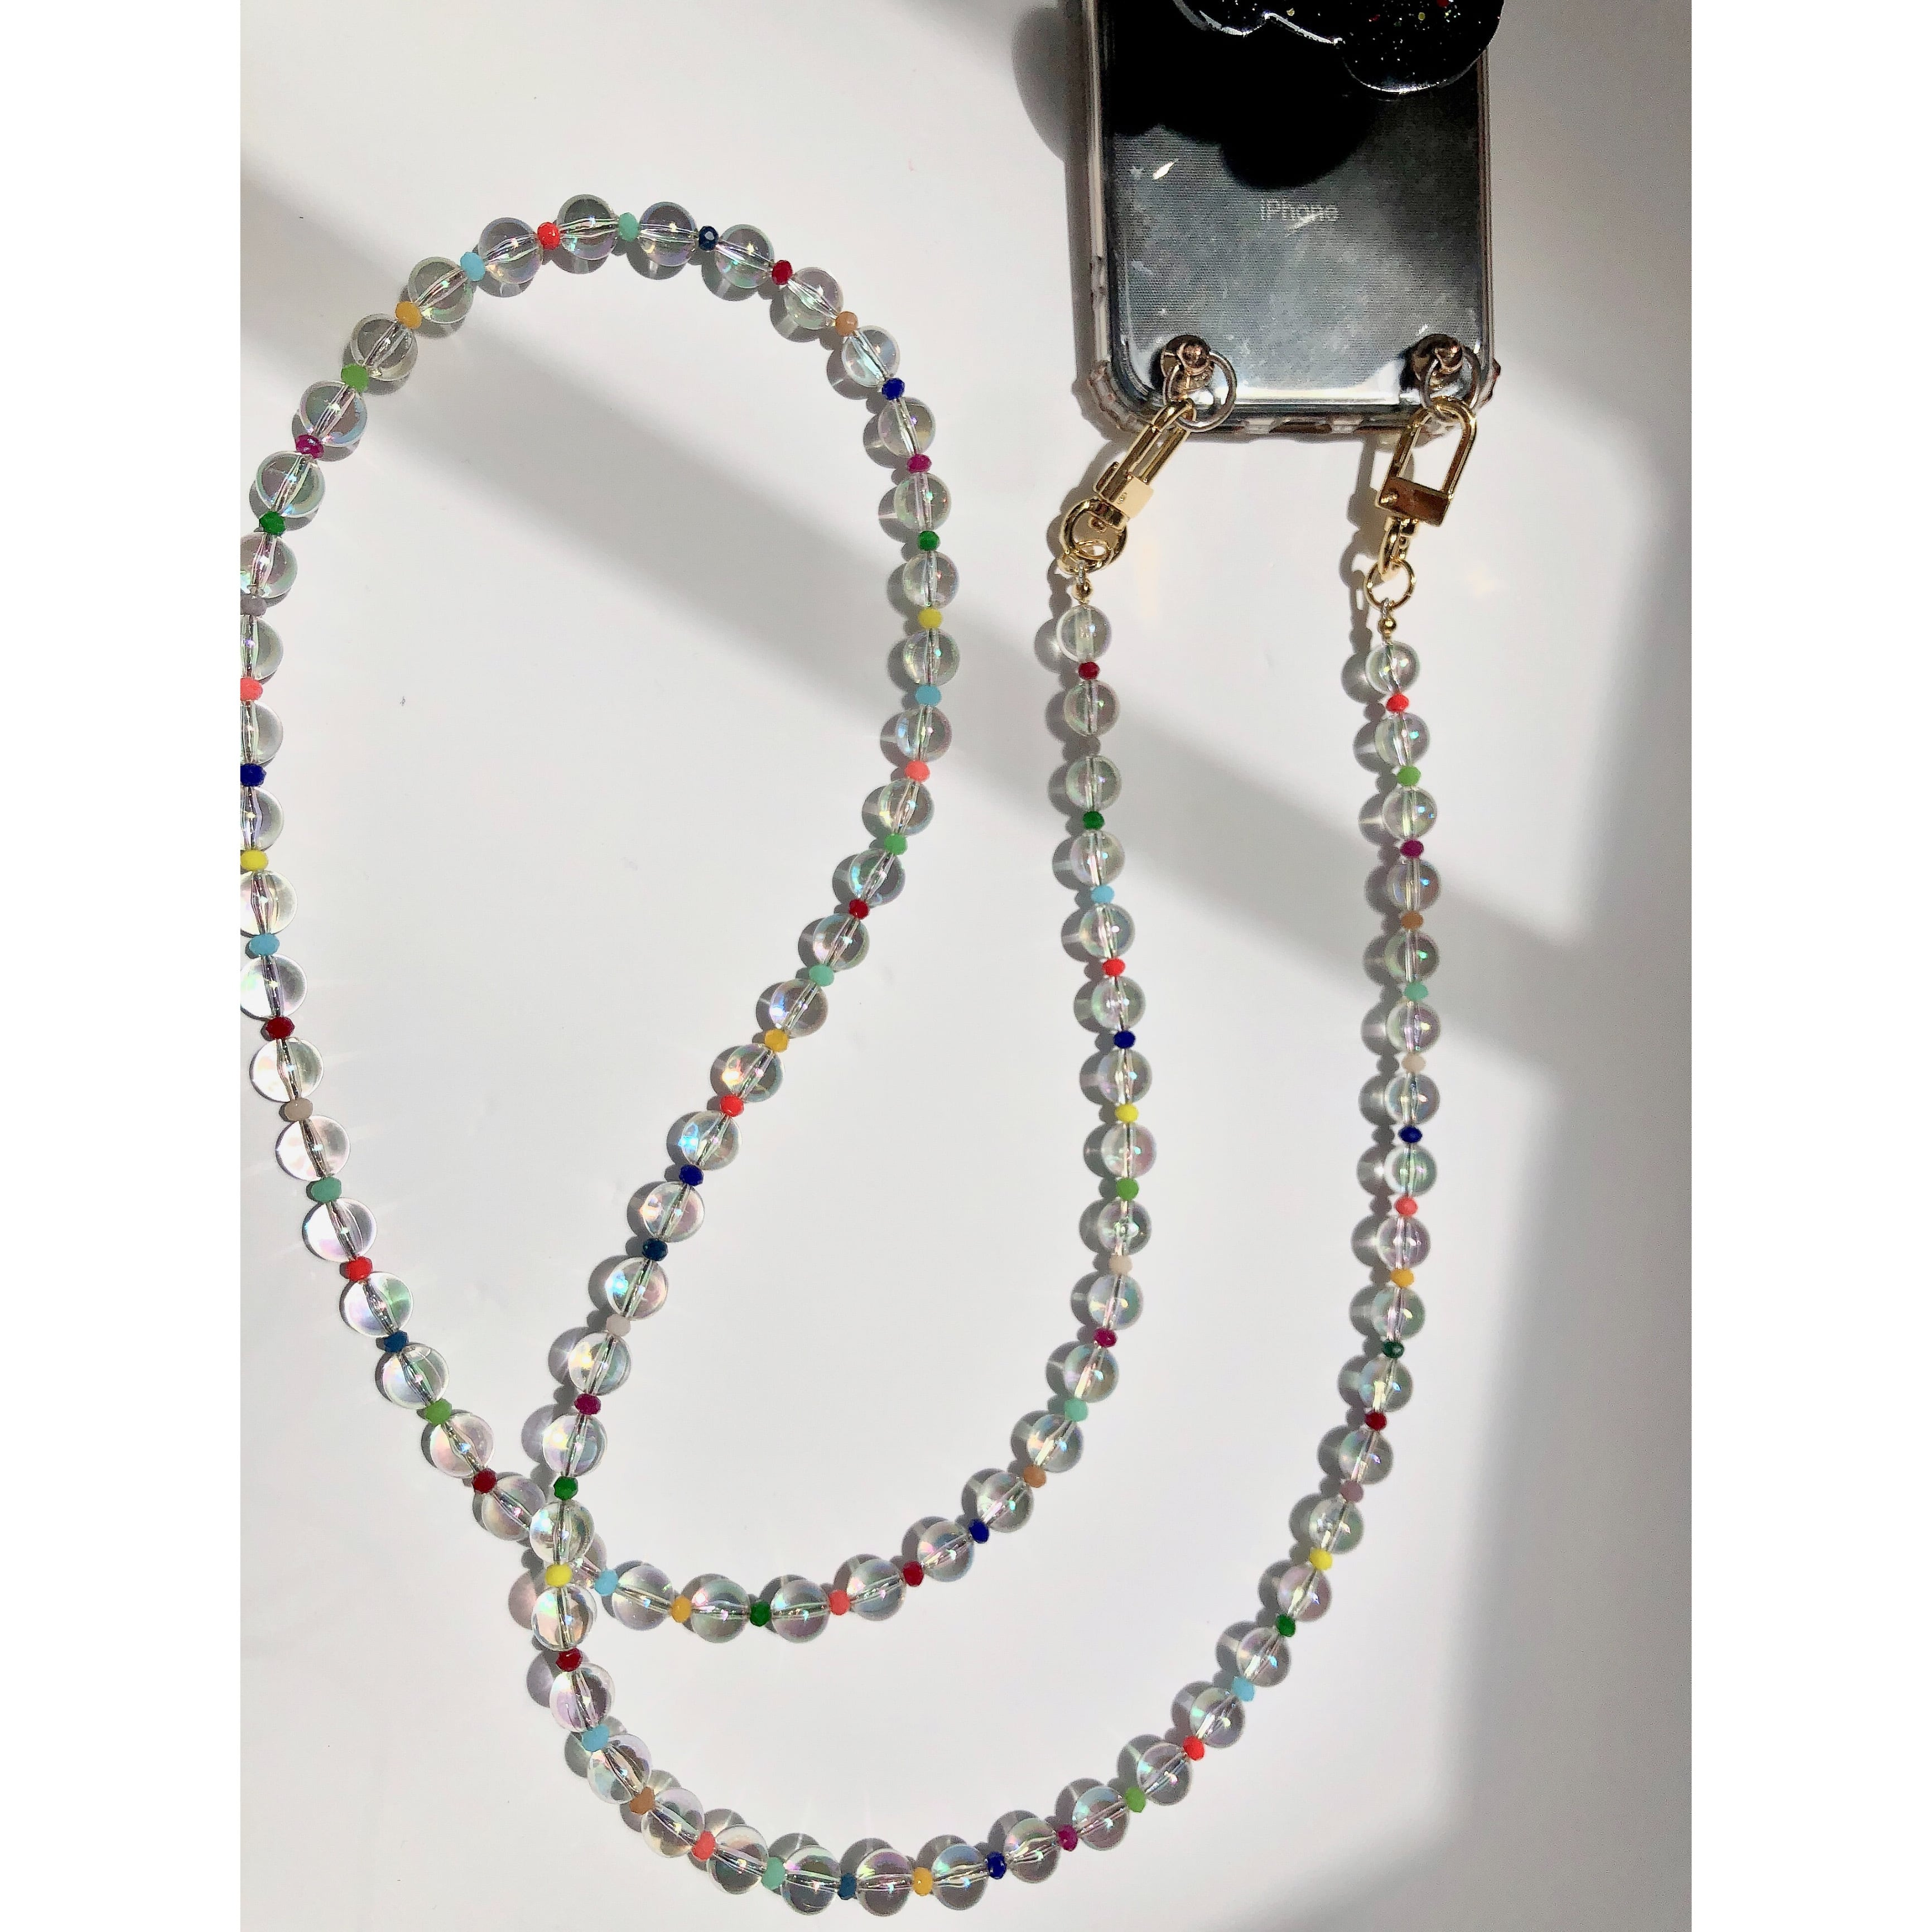 COLORFUL CLEAR MIX STRAP